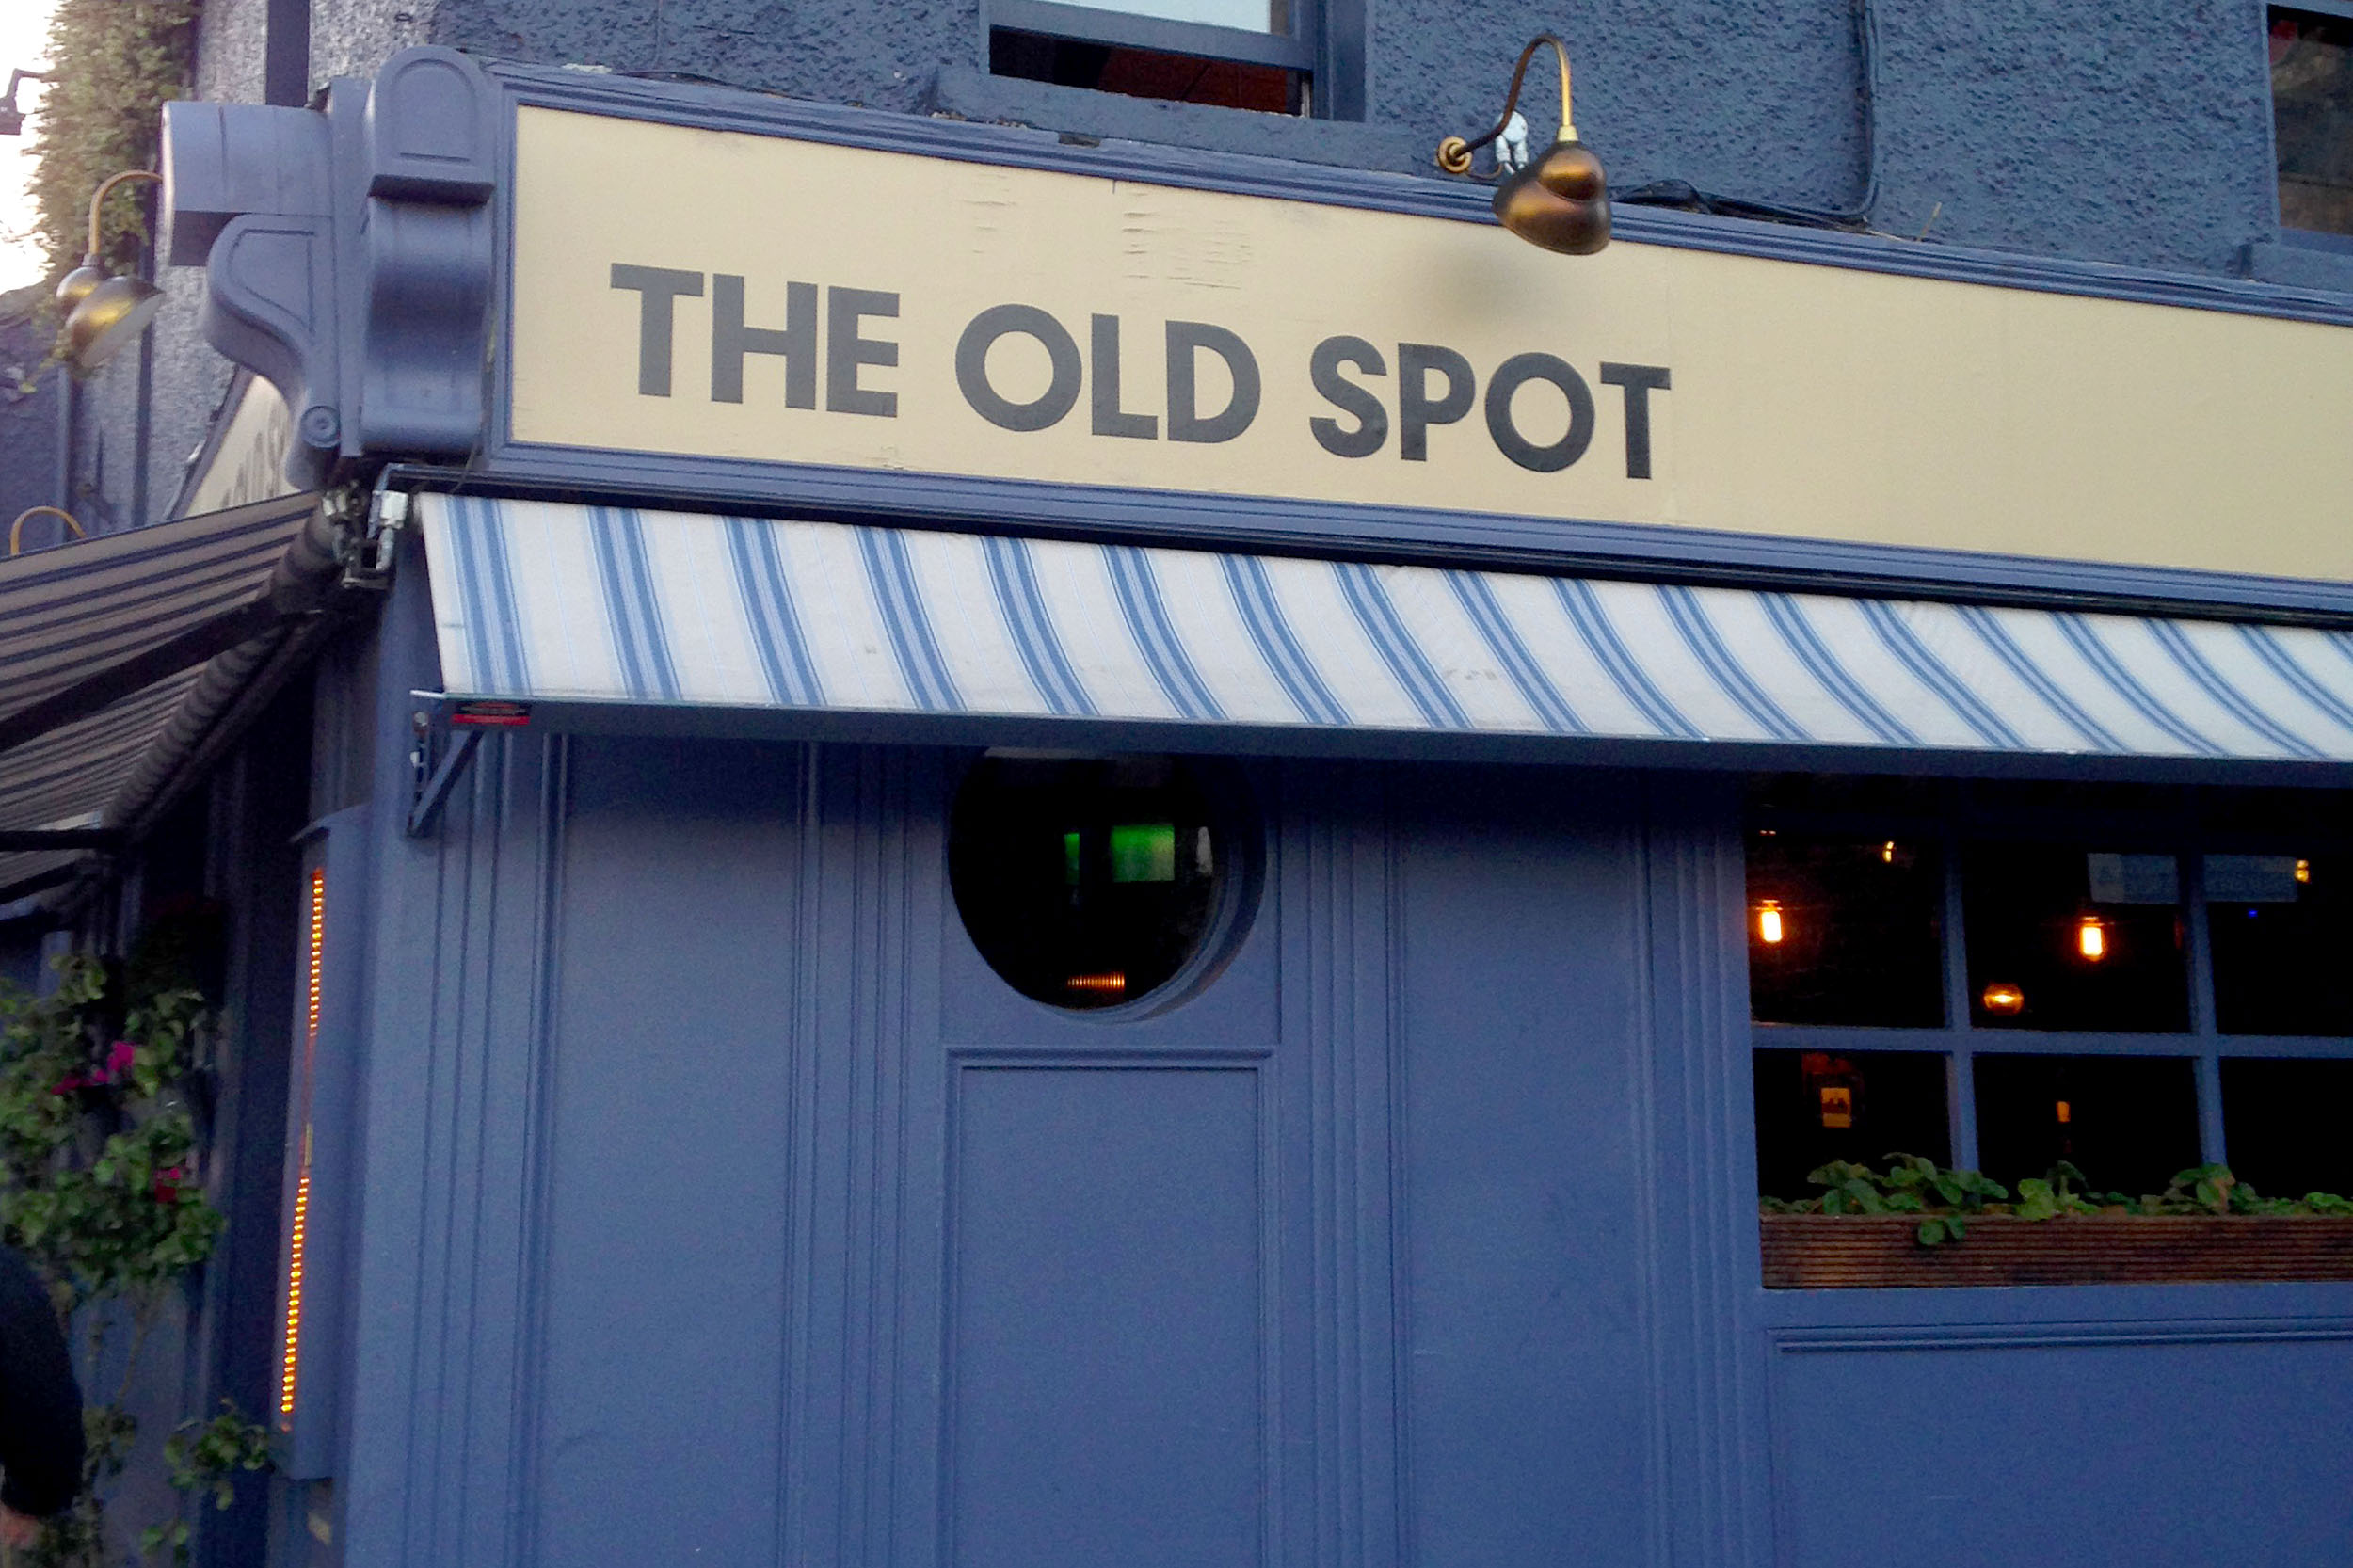 The Old Spot